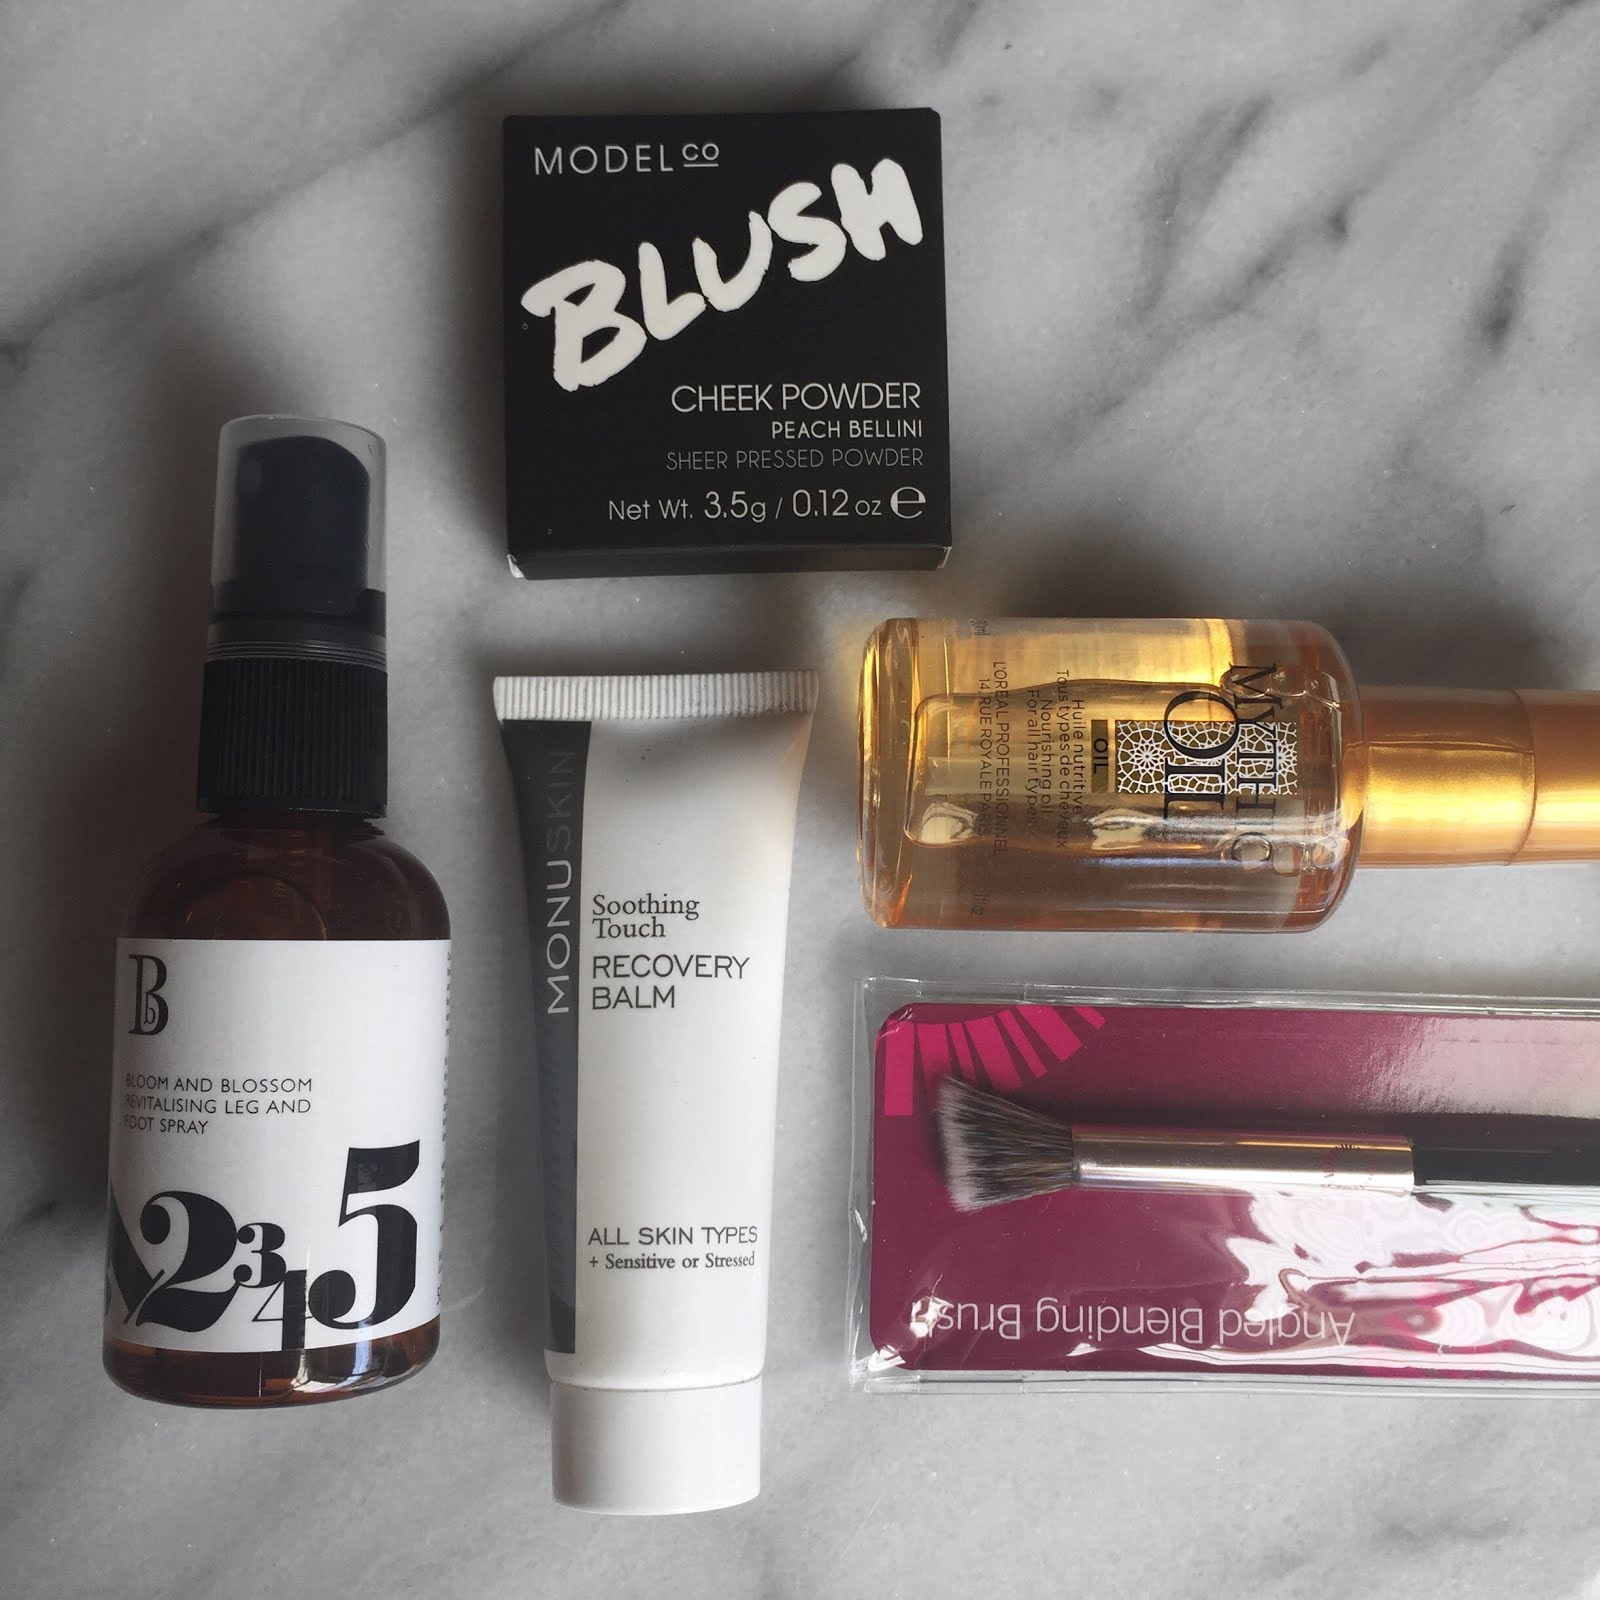 #LFSPARKLE, look fantastic beauty box, Monu, bloom and blossom, model Co